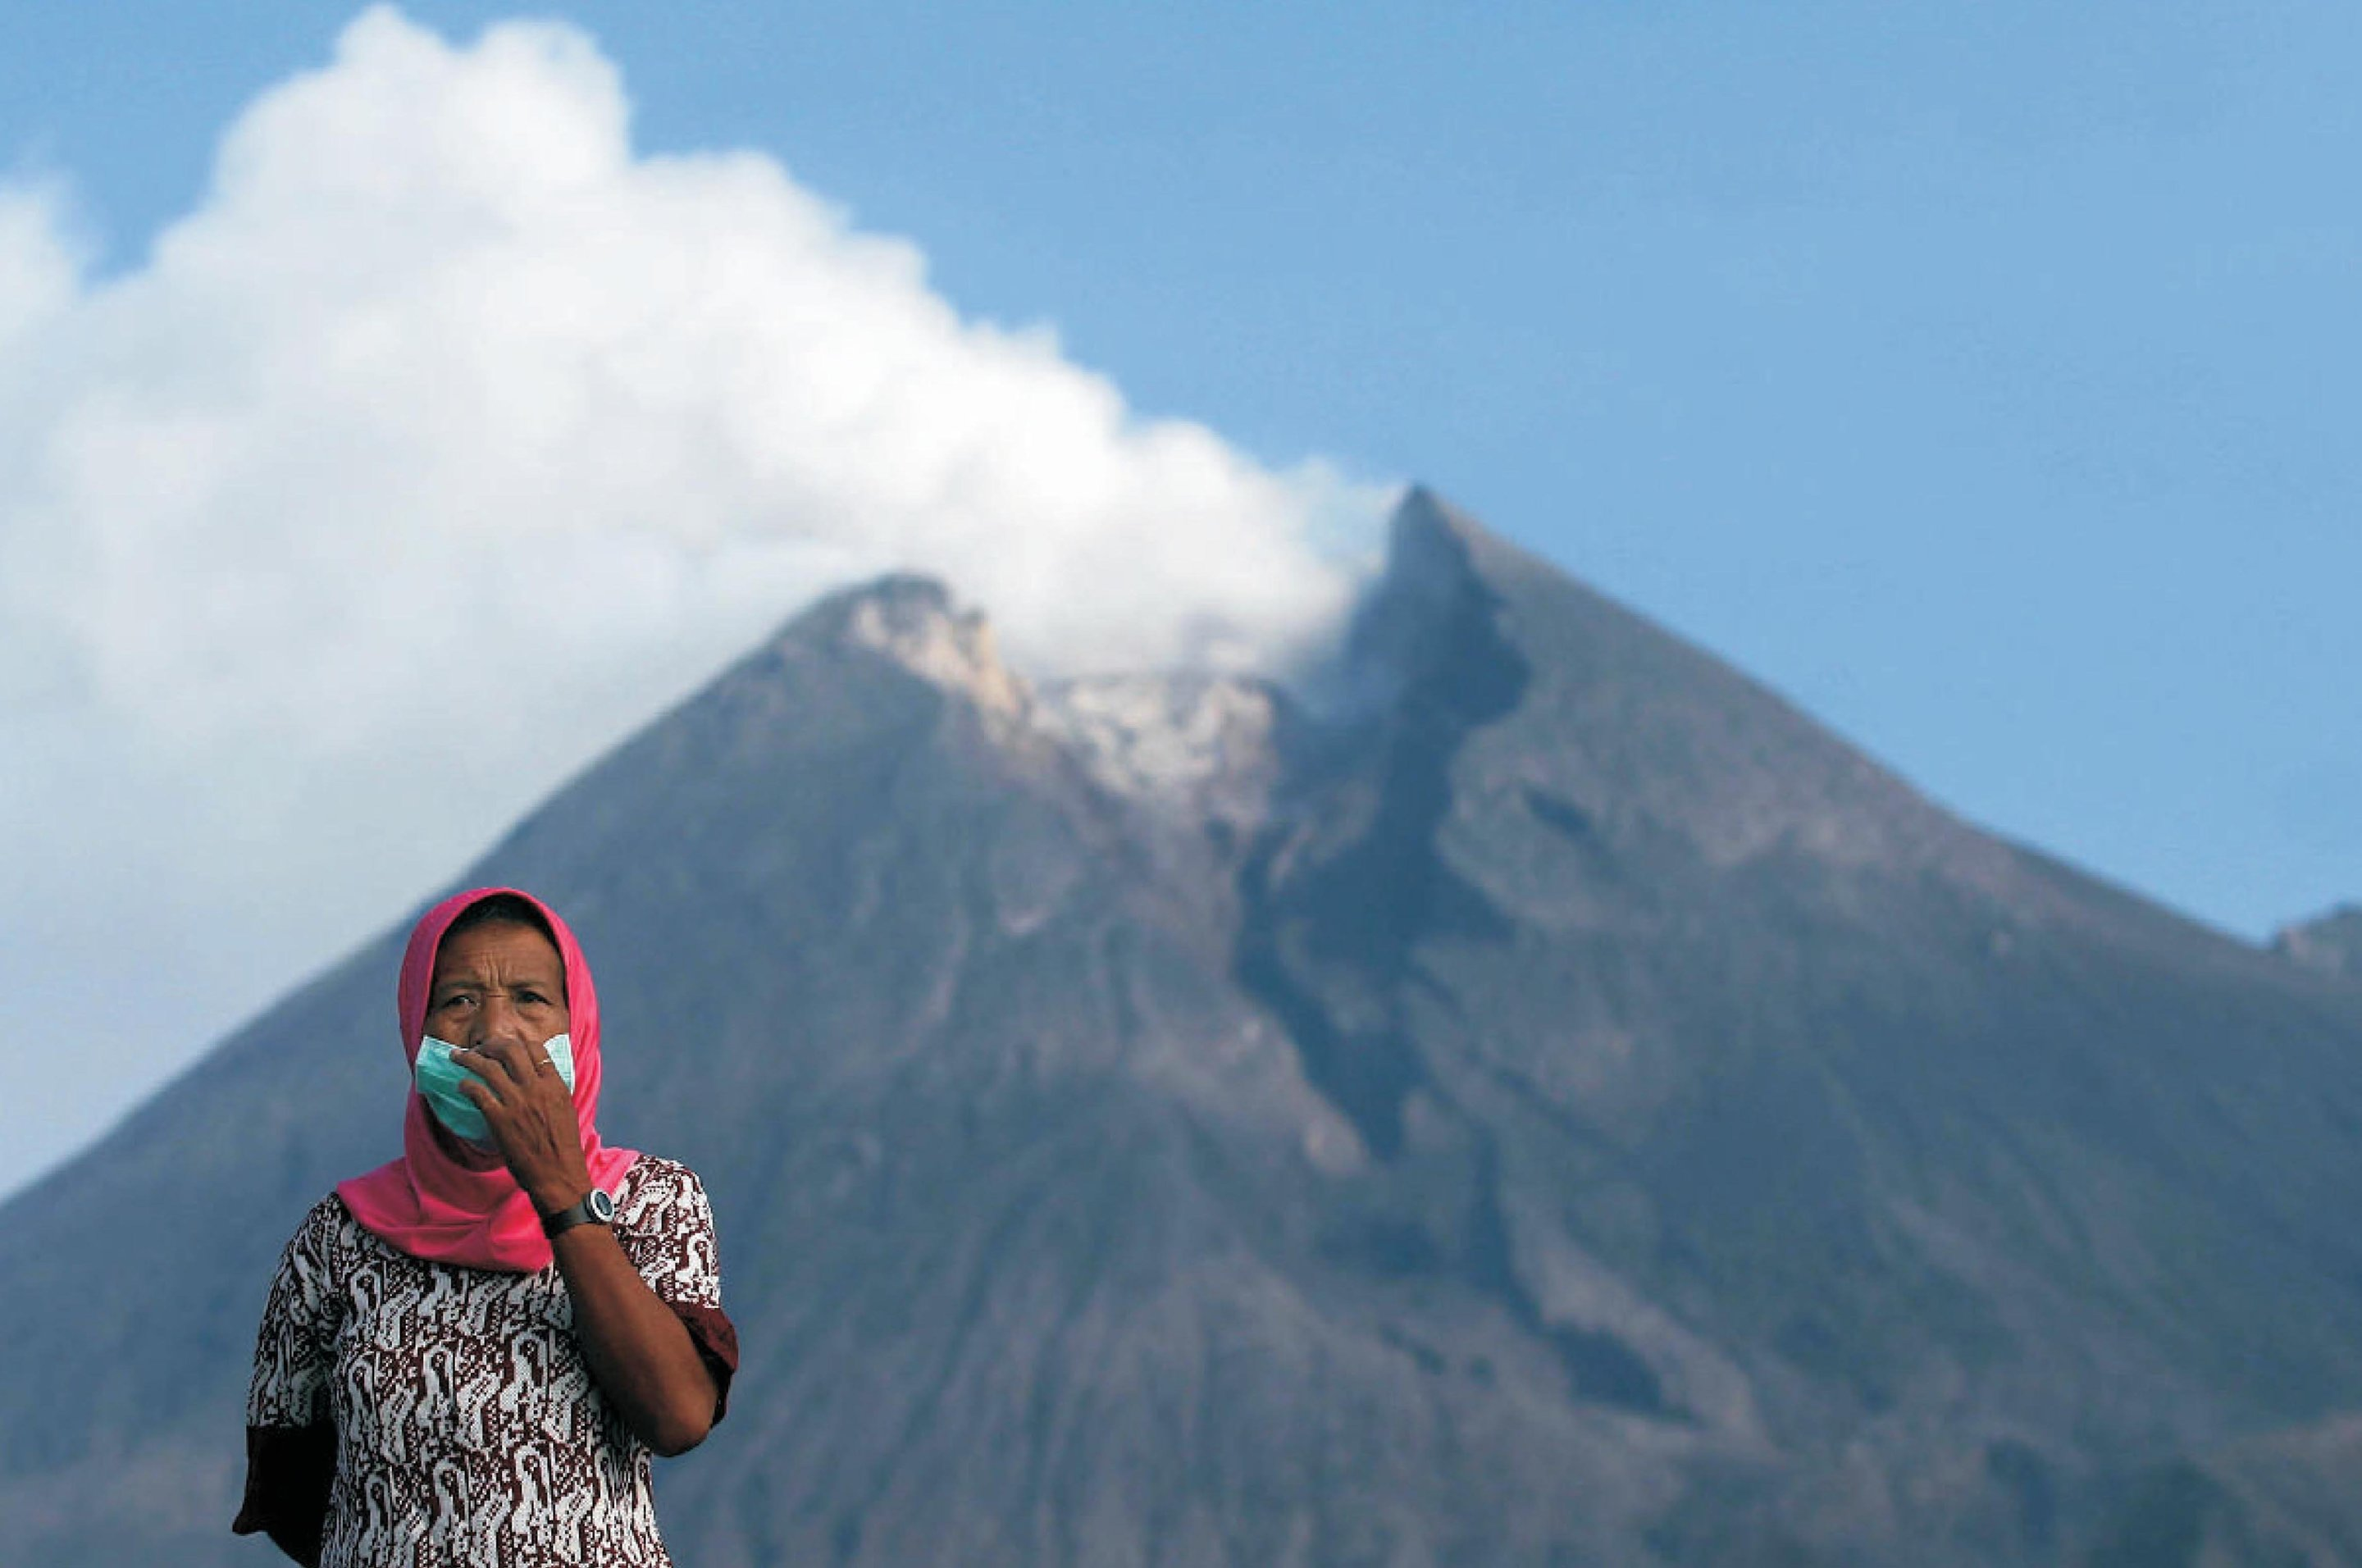 Industry-certified masks offer better protection from volcanic ash exposure